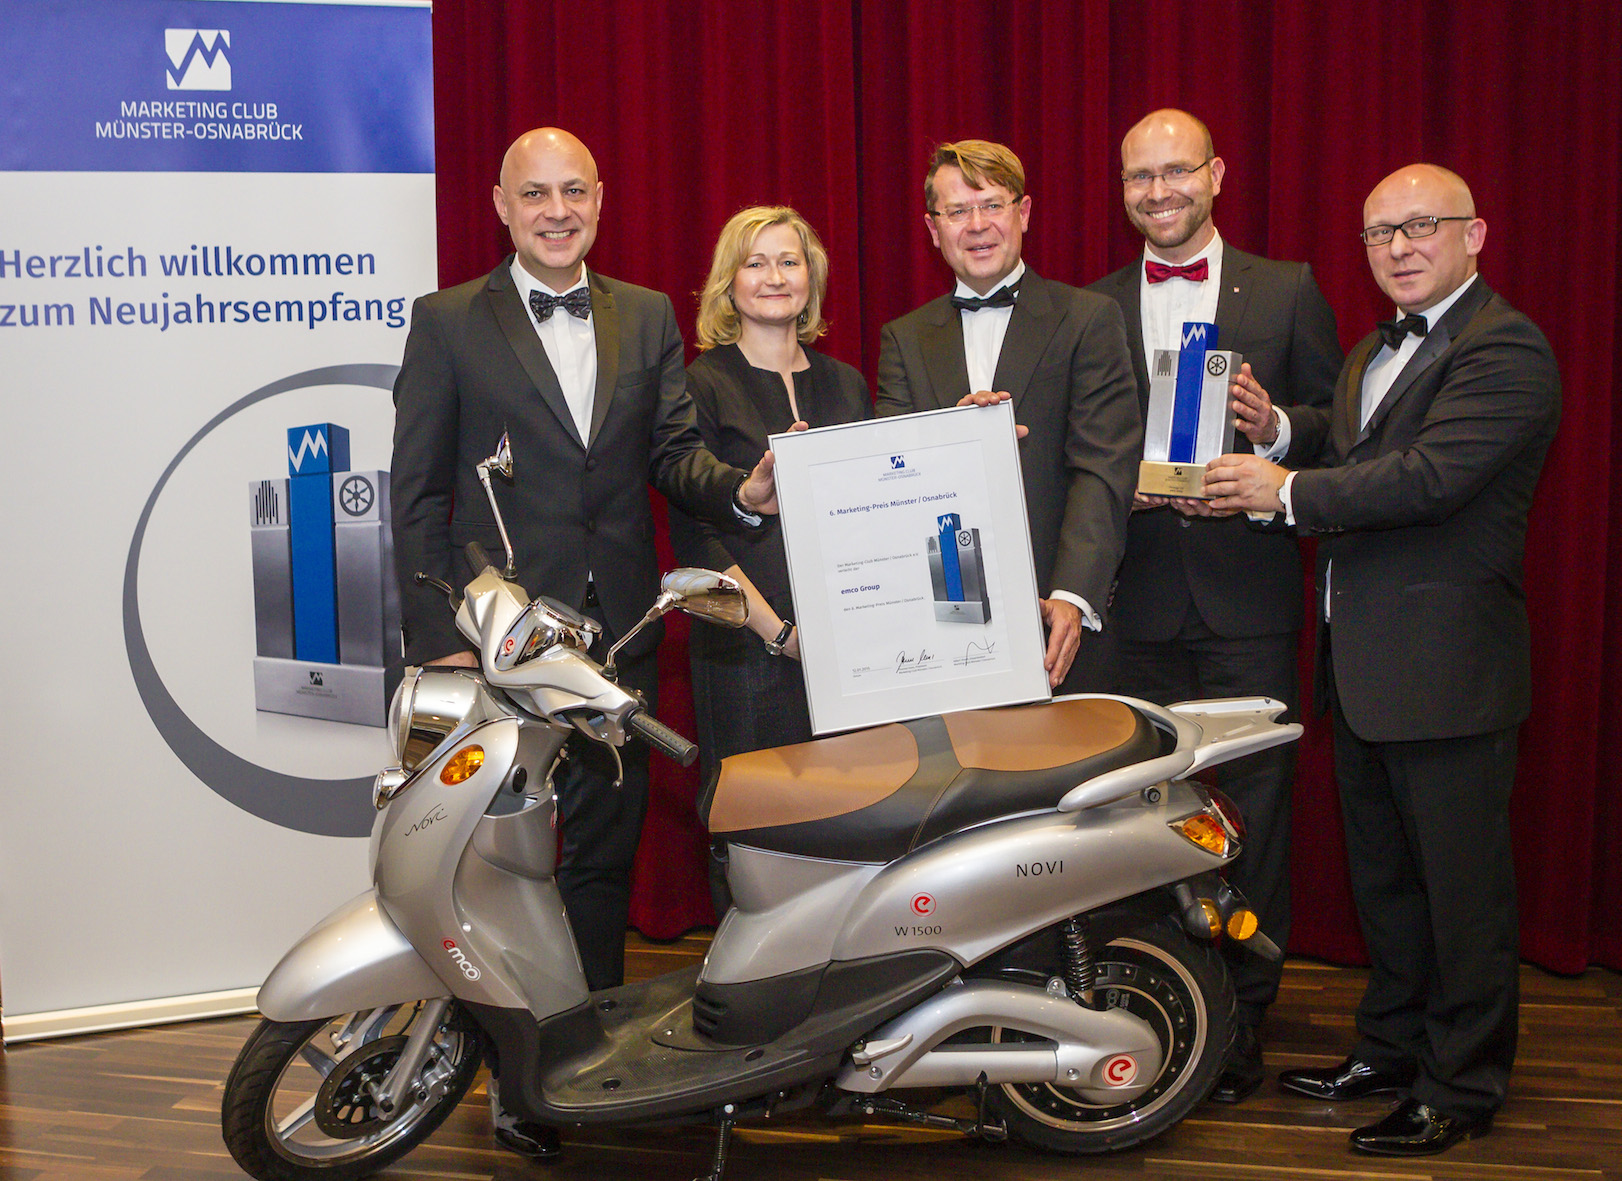 Emco wint marketingprijs in Duitsland